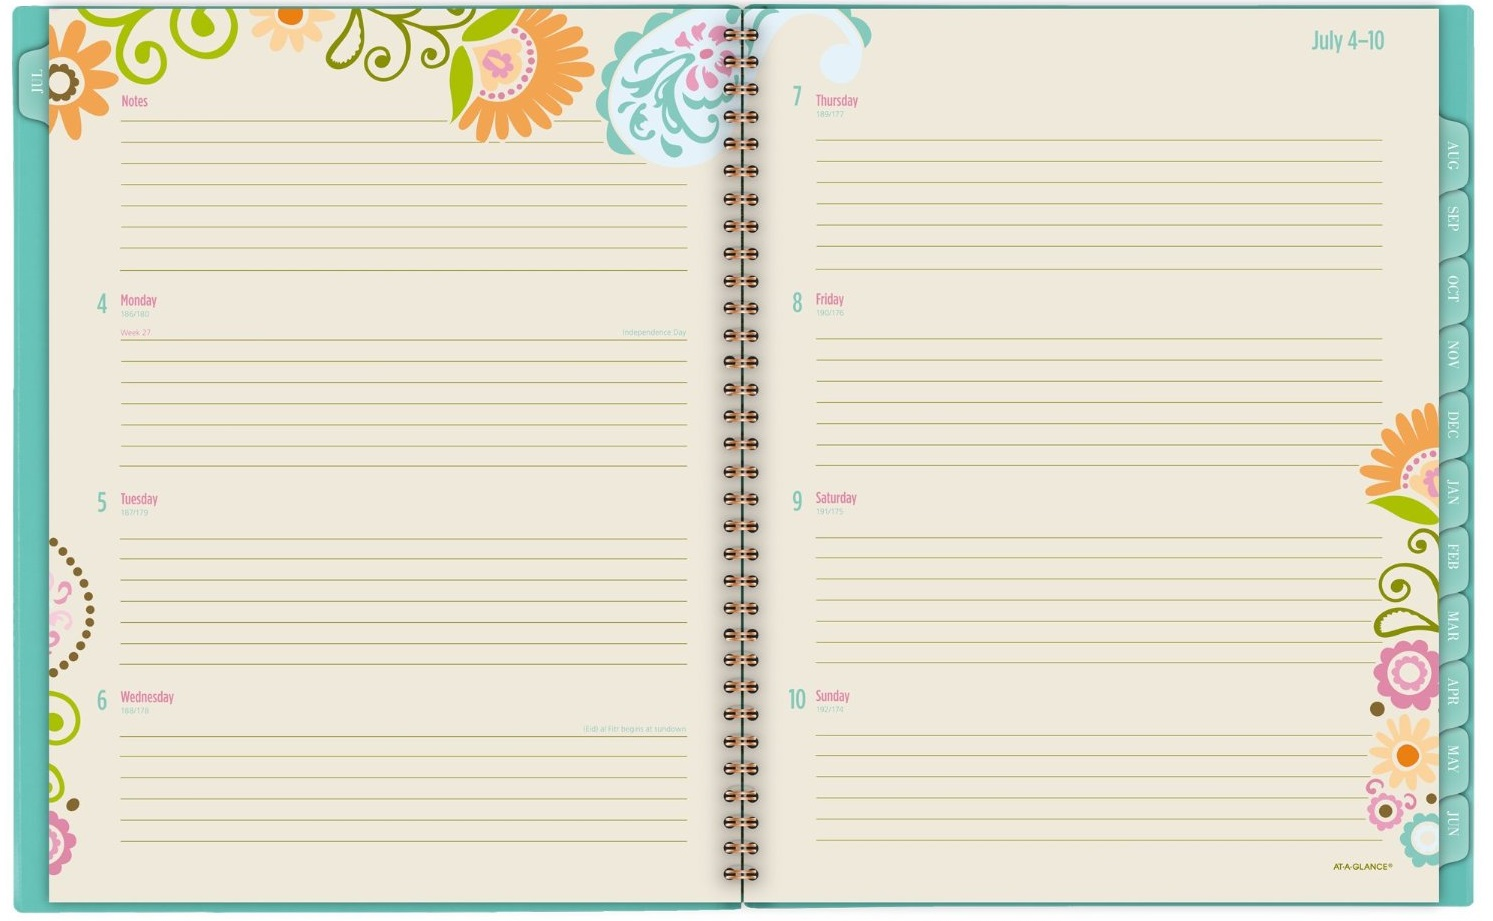 Best planners for college students 2019 – 2020